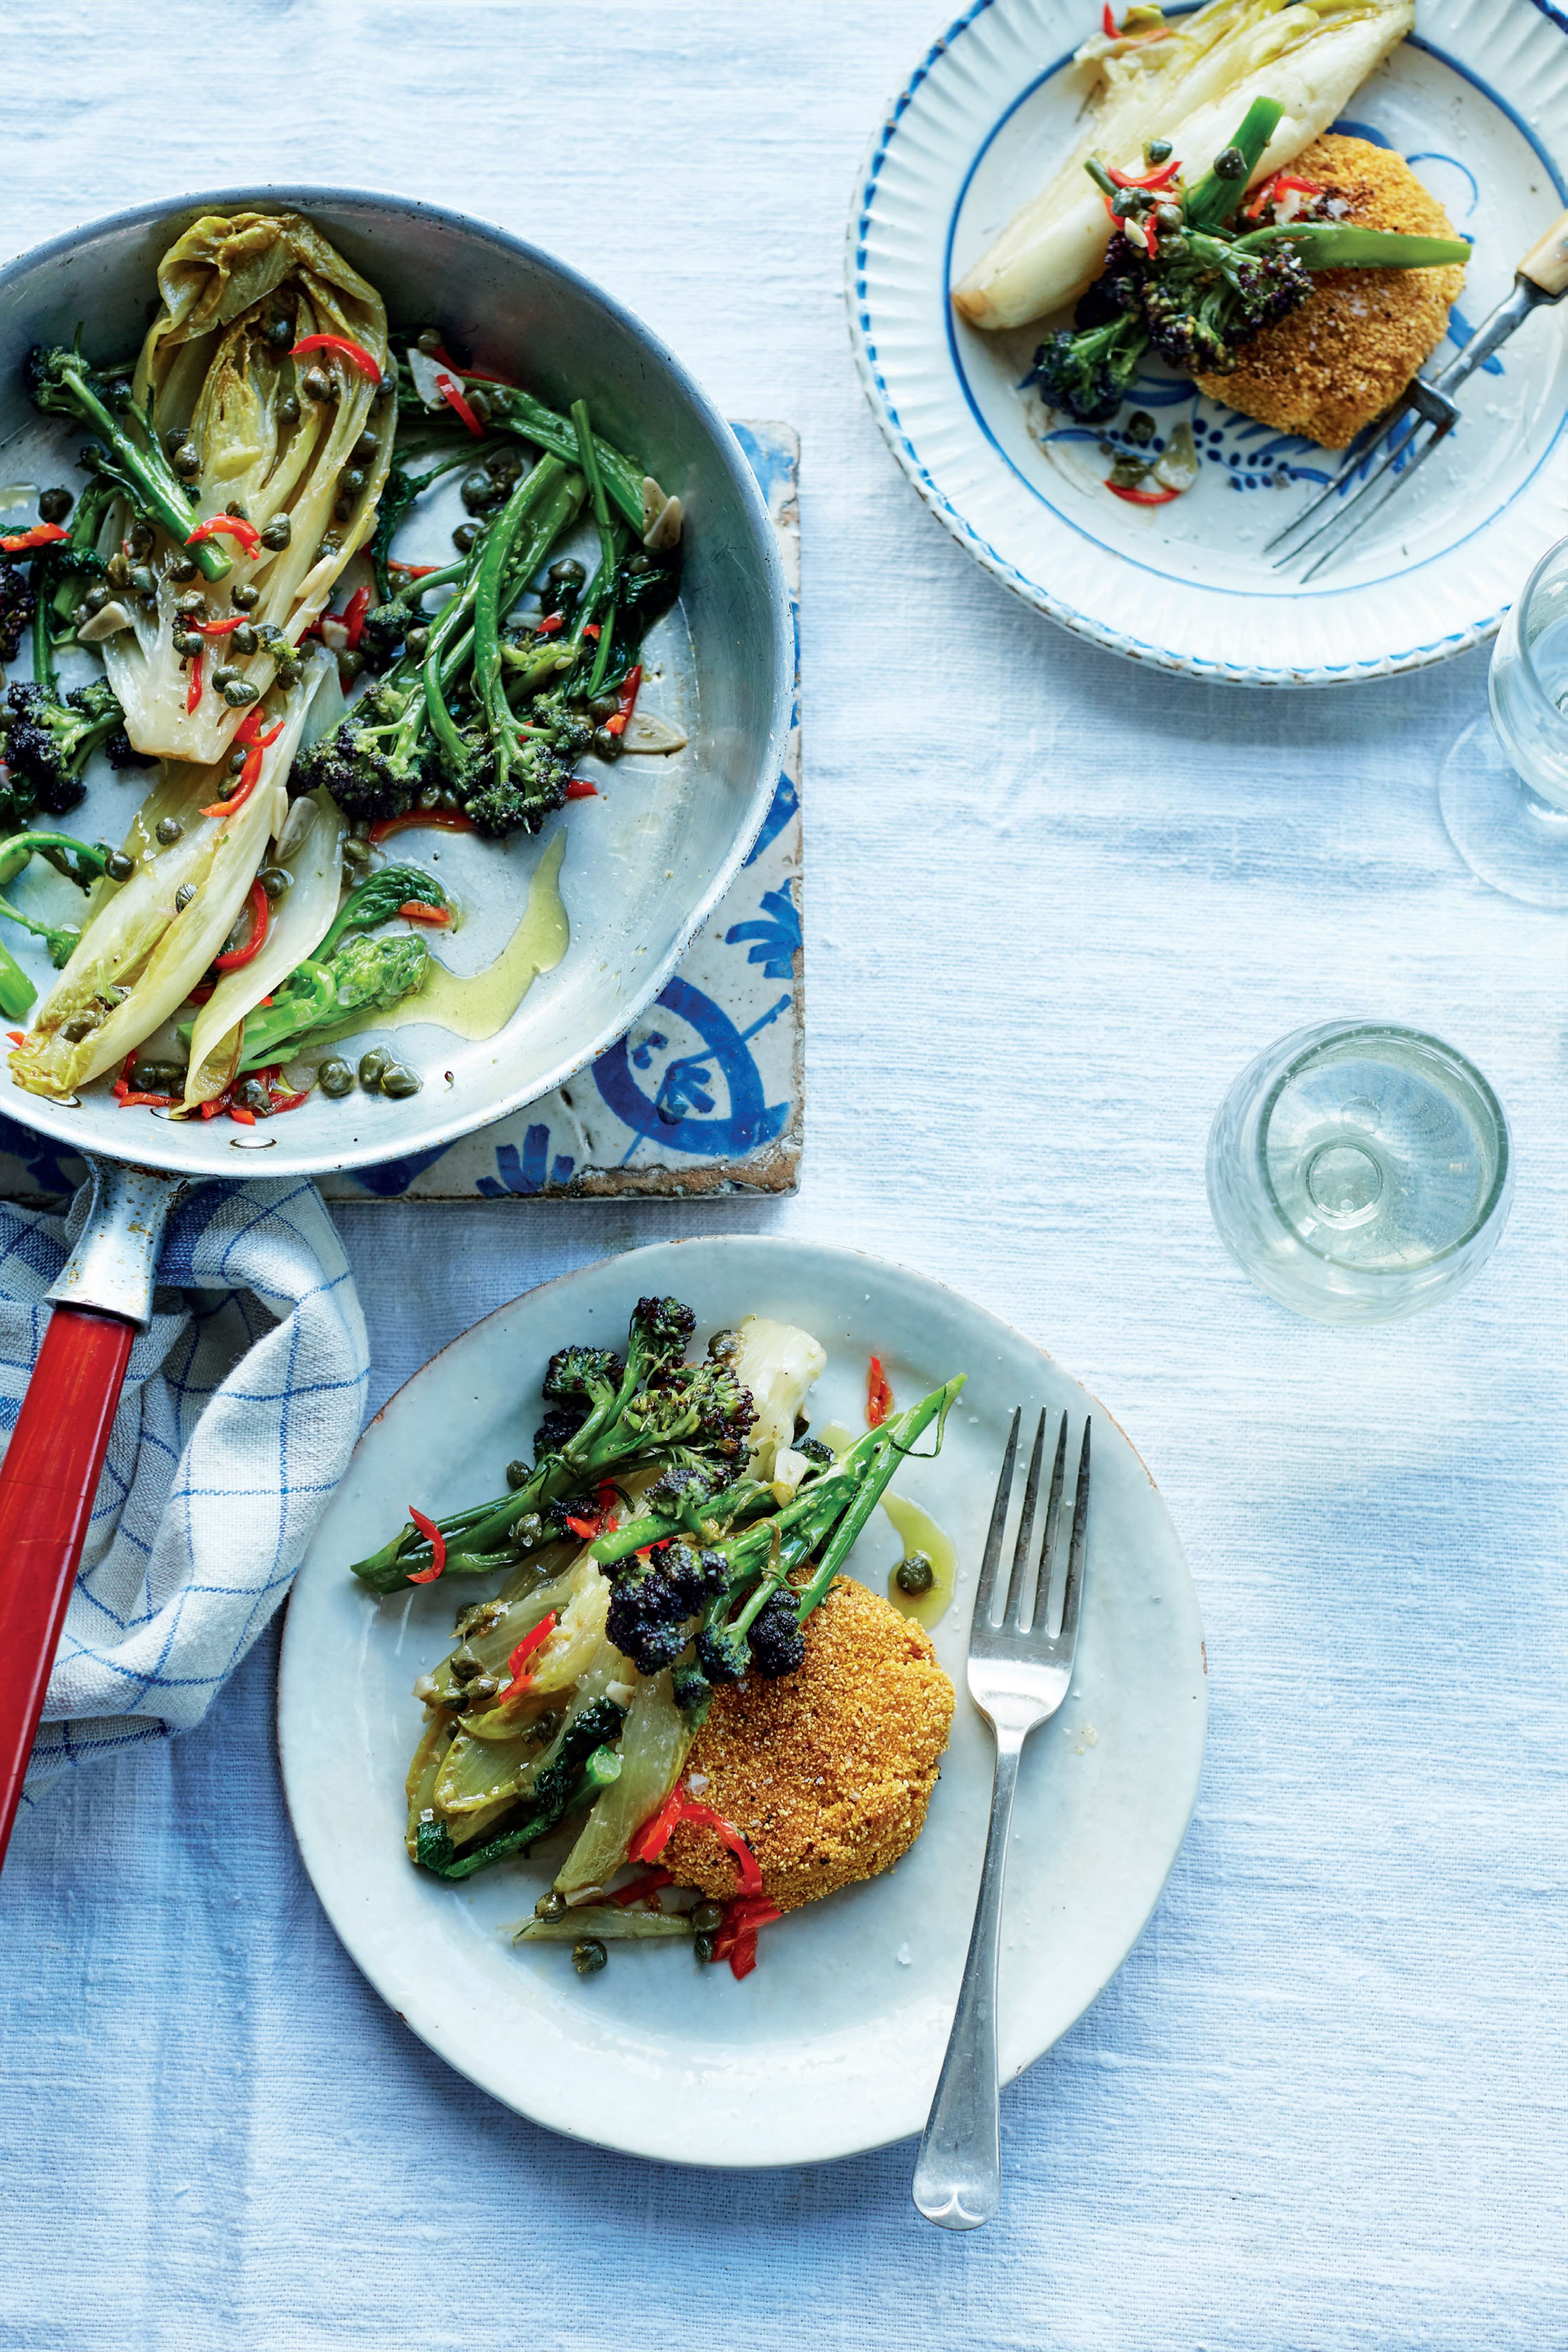 Cooking vegetables the Carluccio way